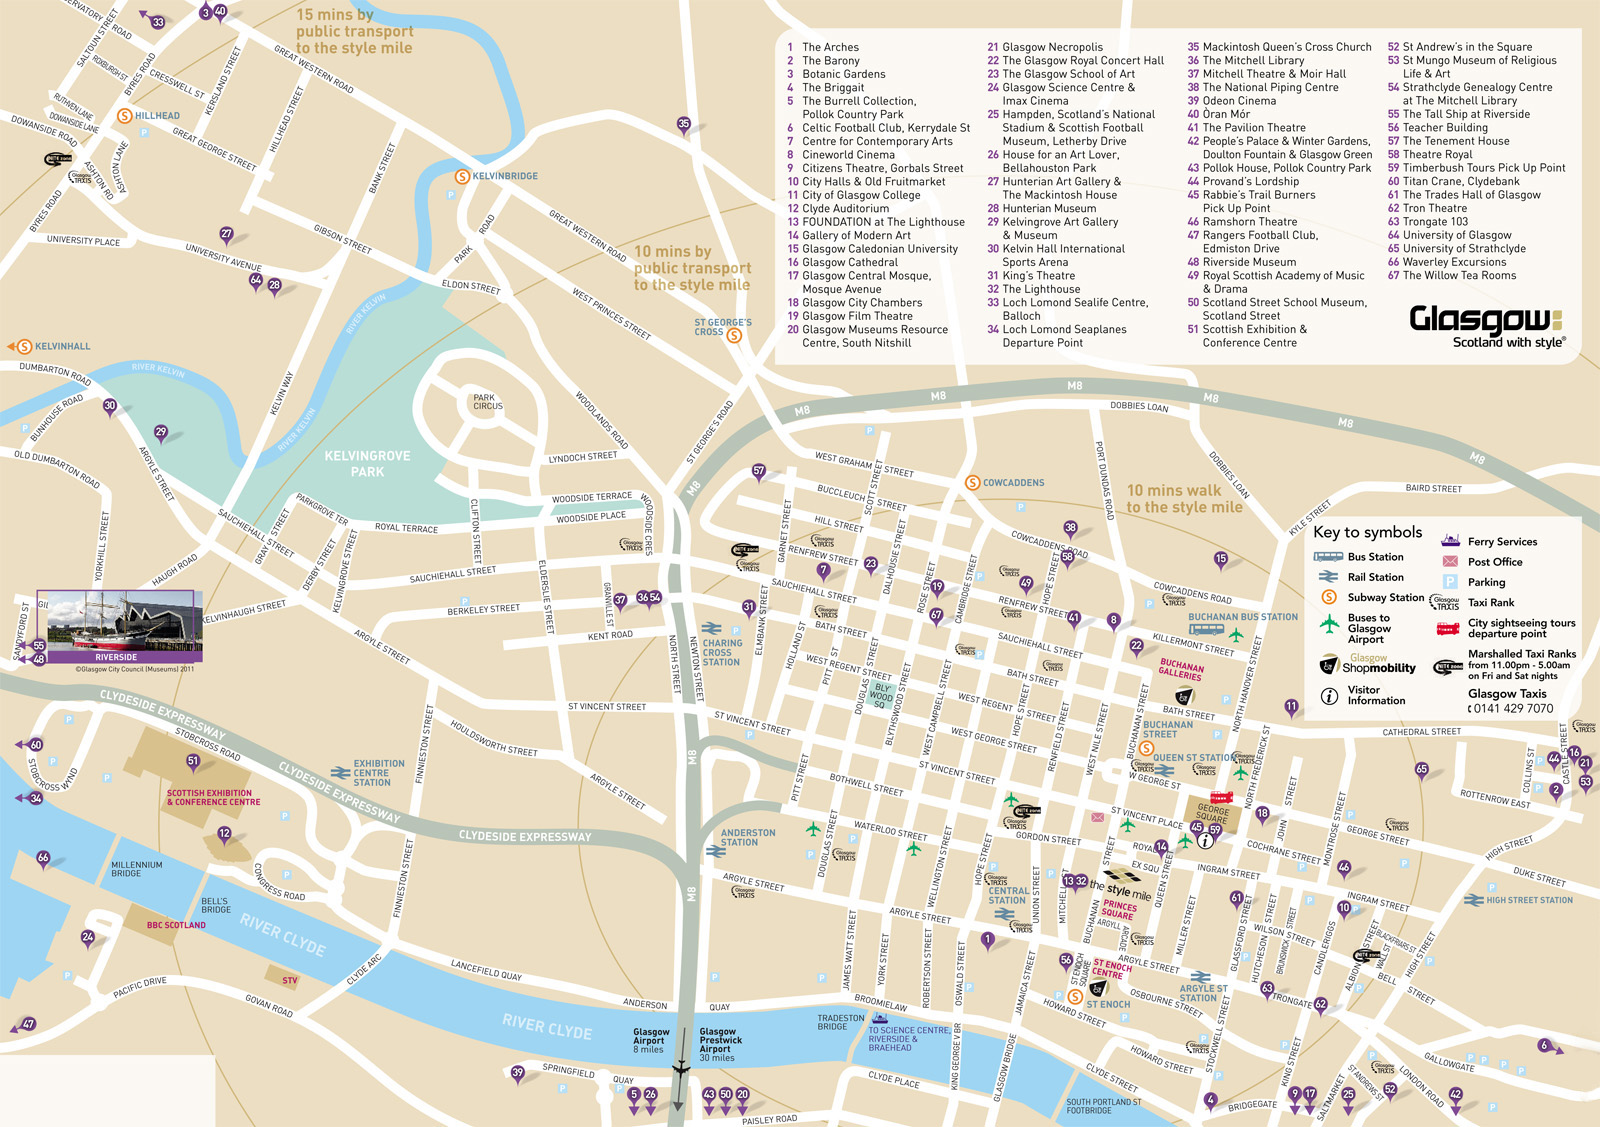 Tourist Map Glasgow Large Glasgow Maps for Free Download and Print | High Resolution